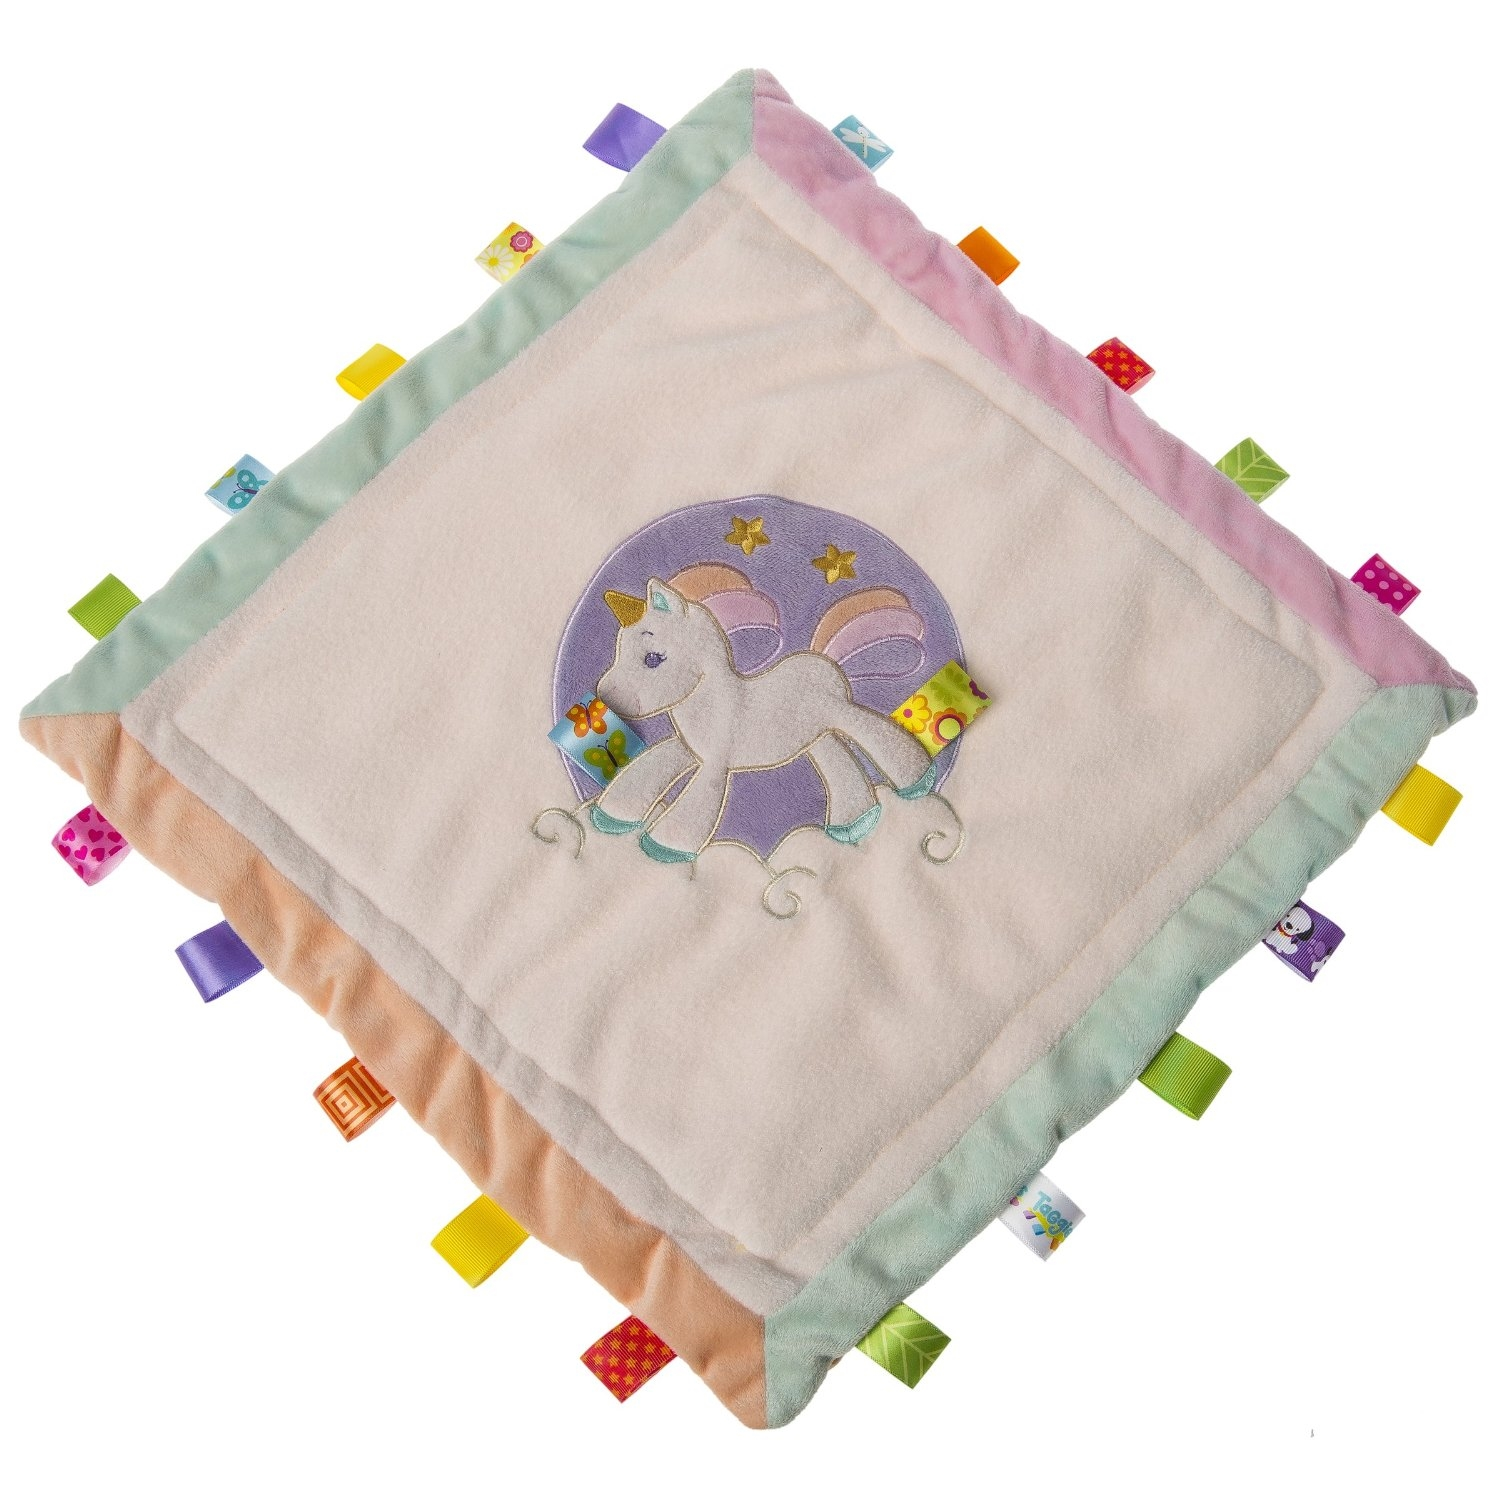 Mary Meyer Taggies Dreamsicle Unicorn Cozy Security Blanket